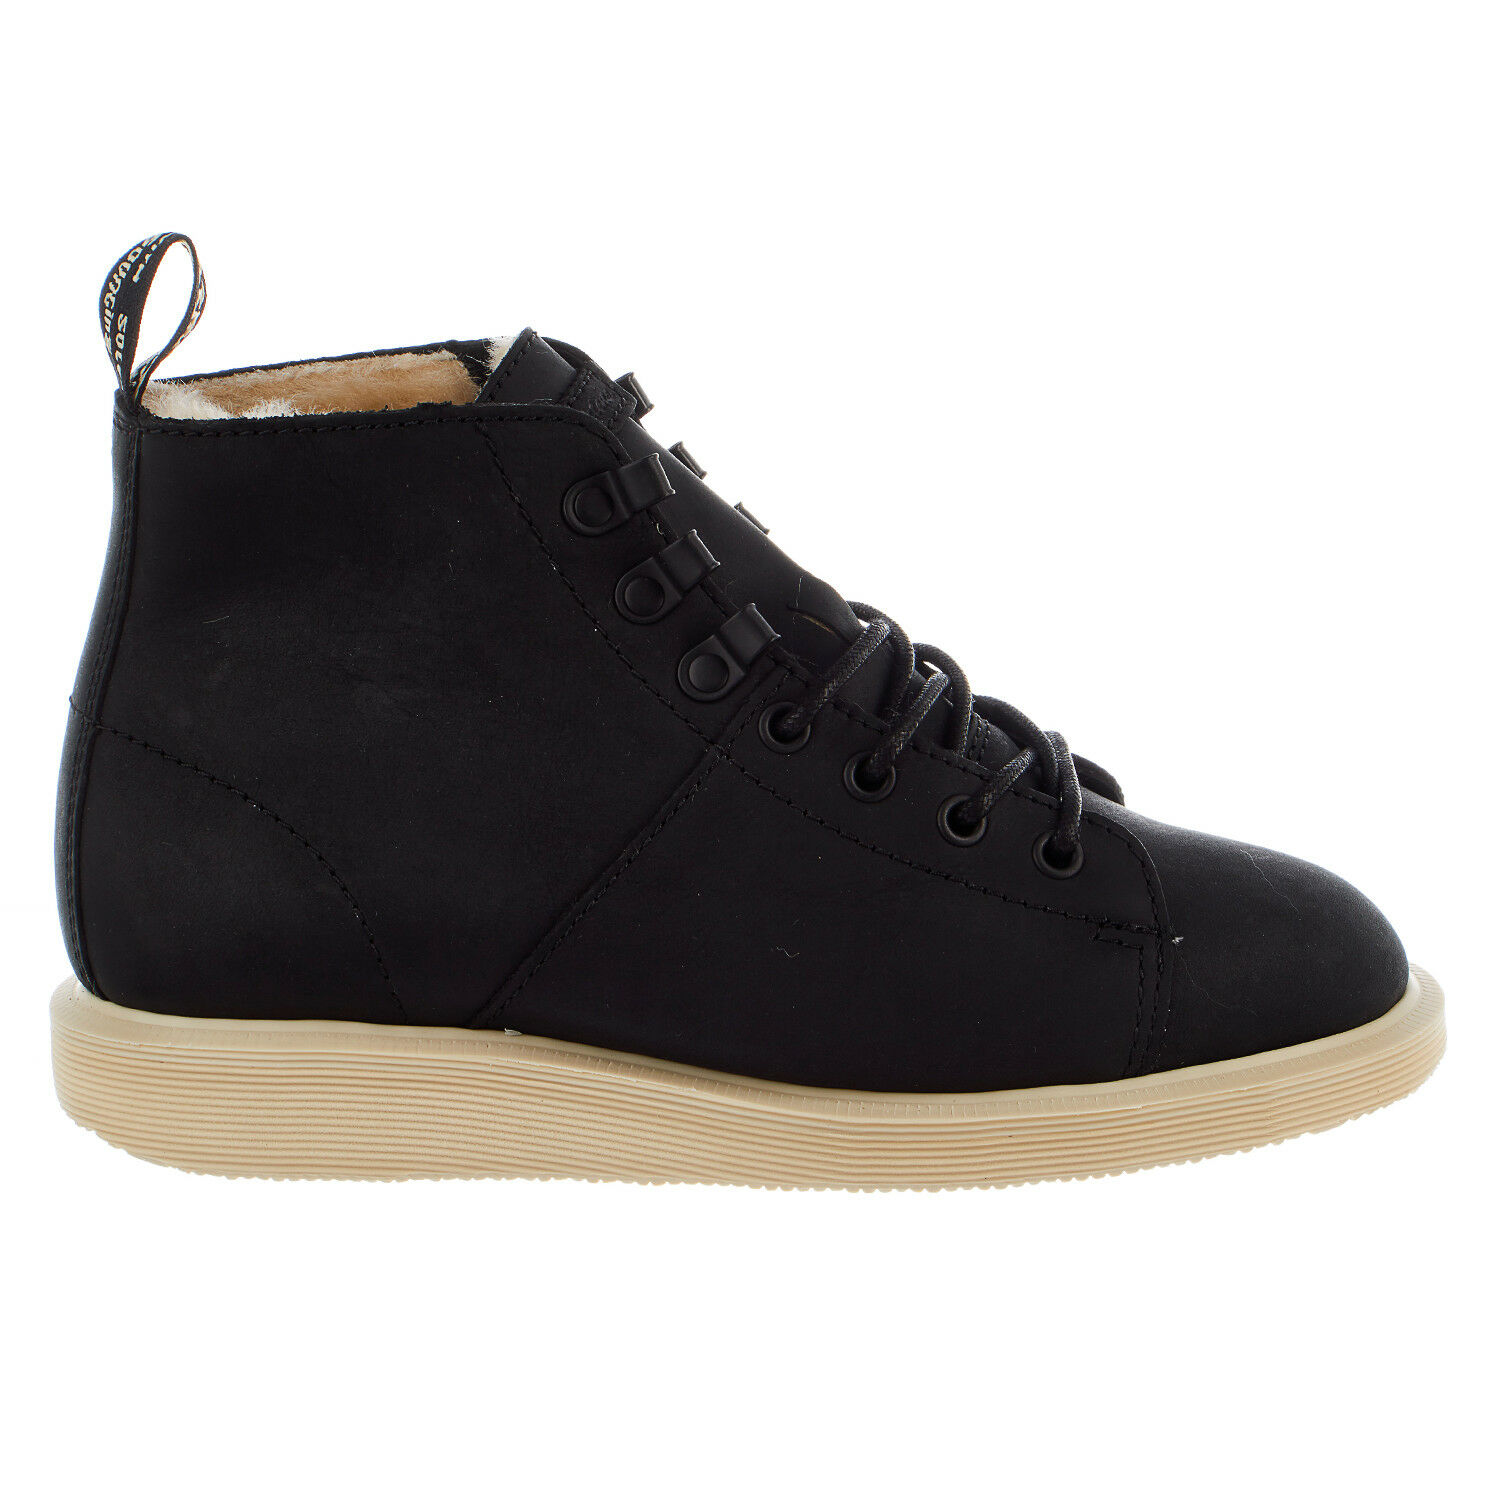 Dr. Martens Fur Lined Les Boot Lace Up Winter shoes - Womens